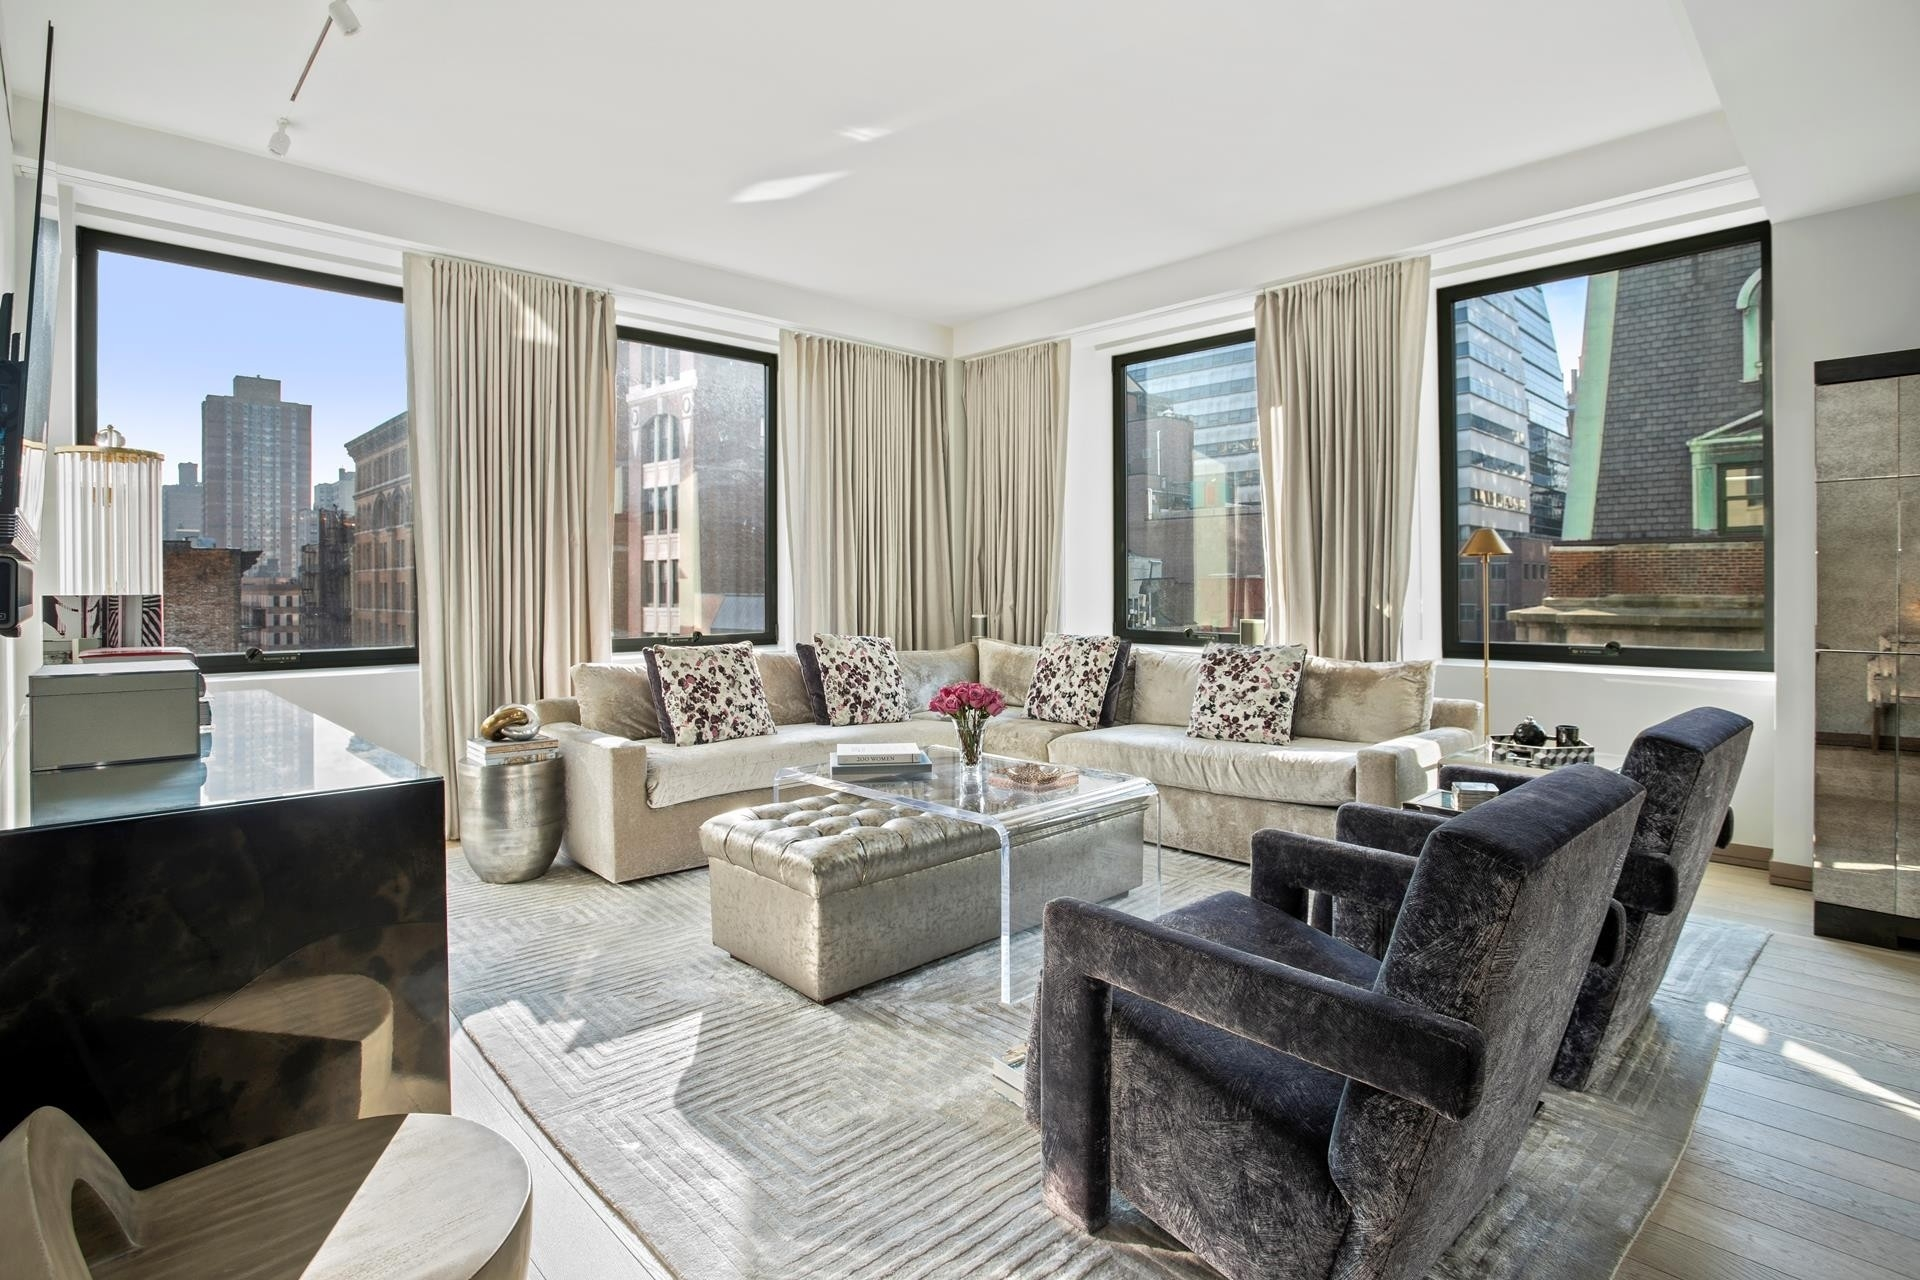 Condominium à 88 Lexington Avenue, 605 NoMad, New York, NY 10016